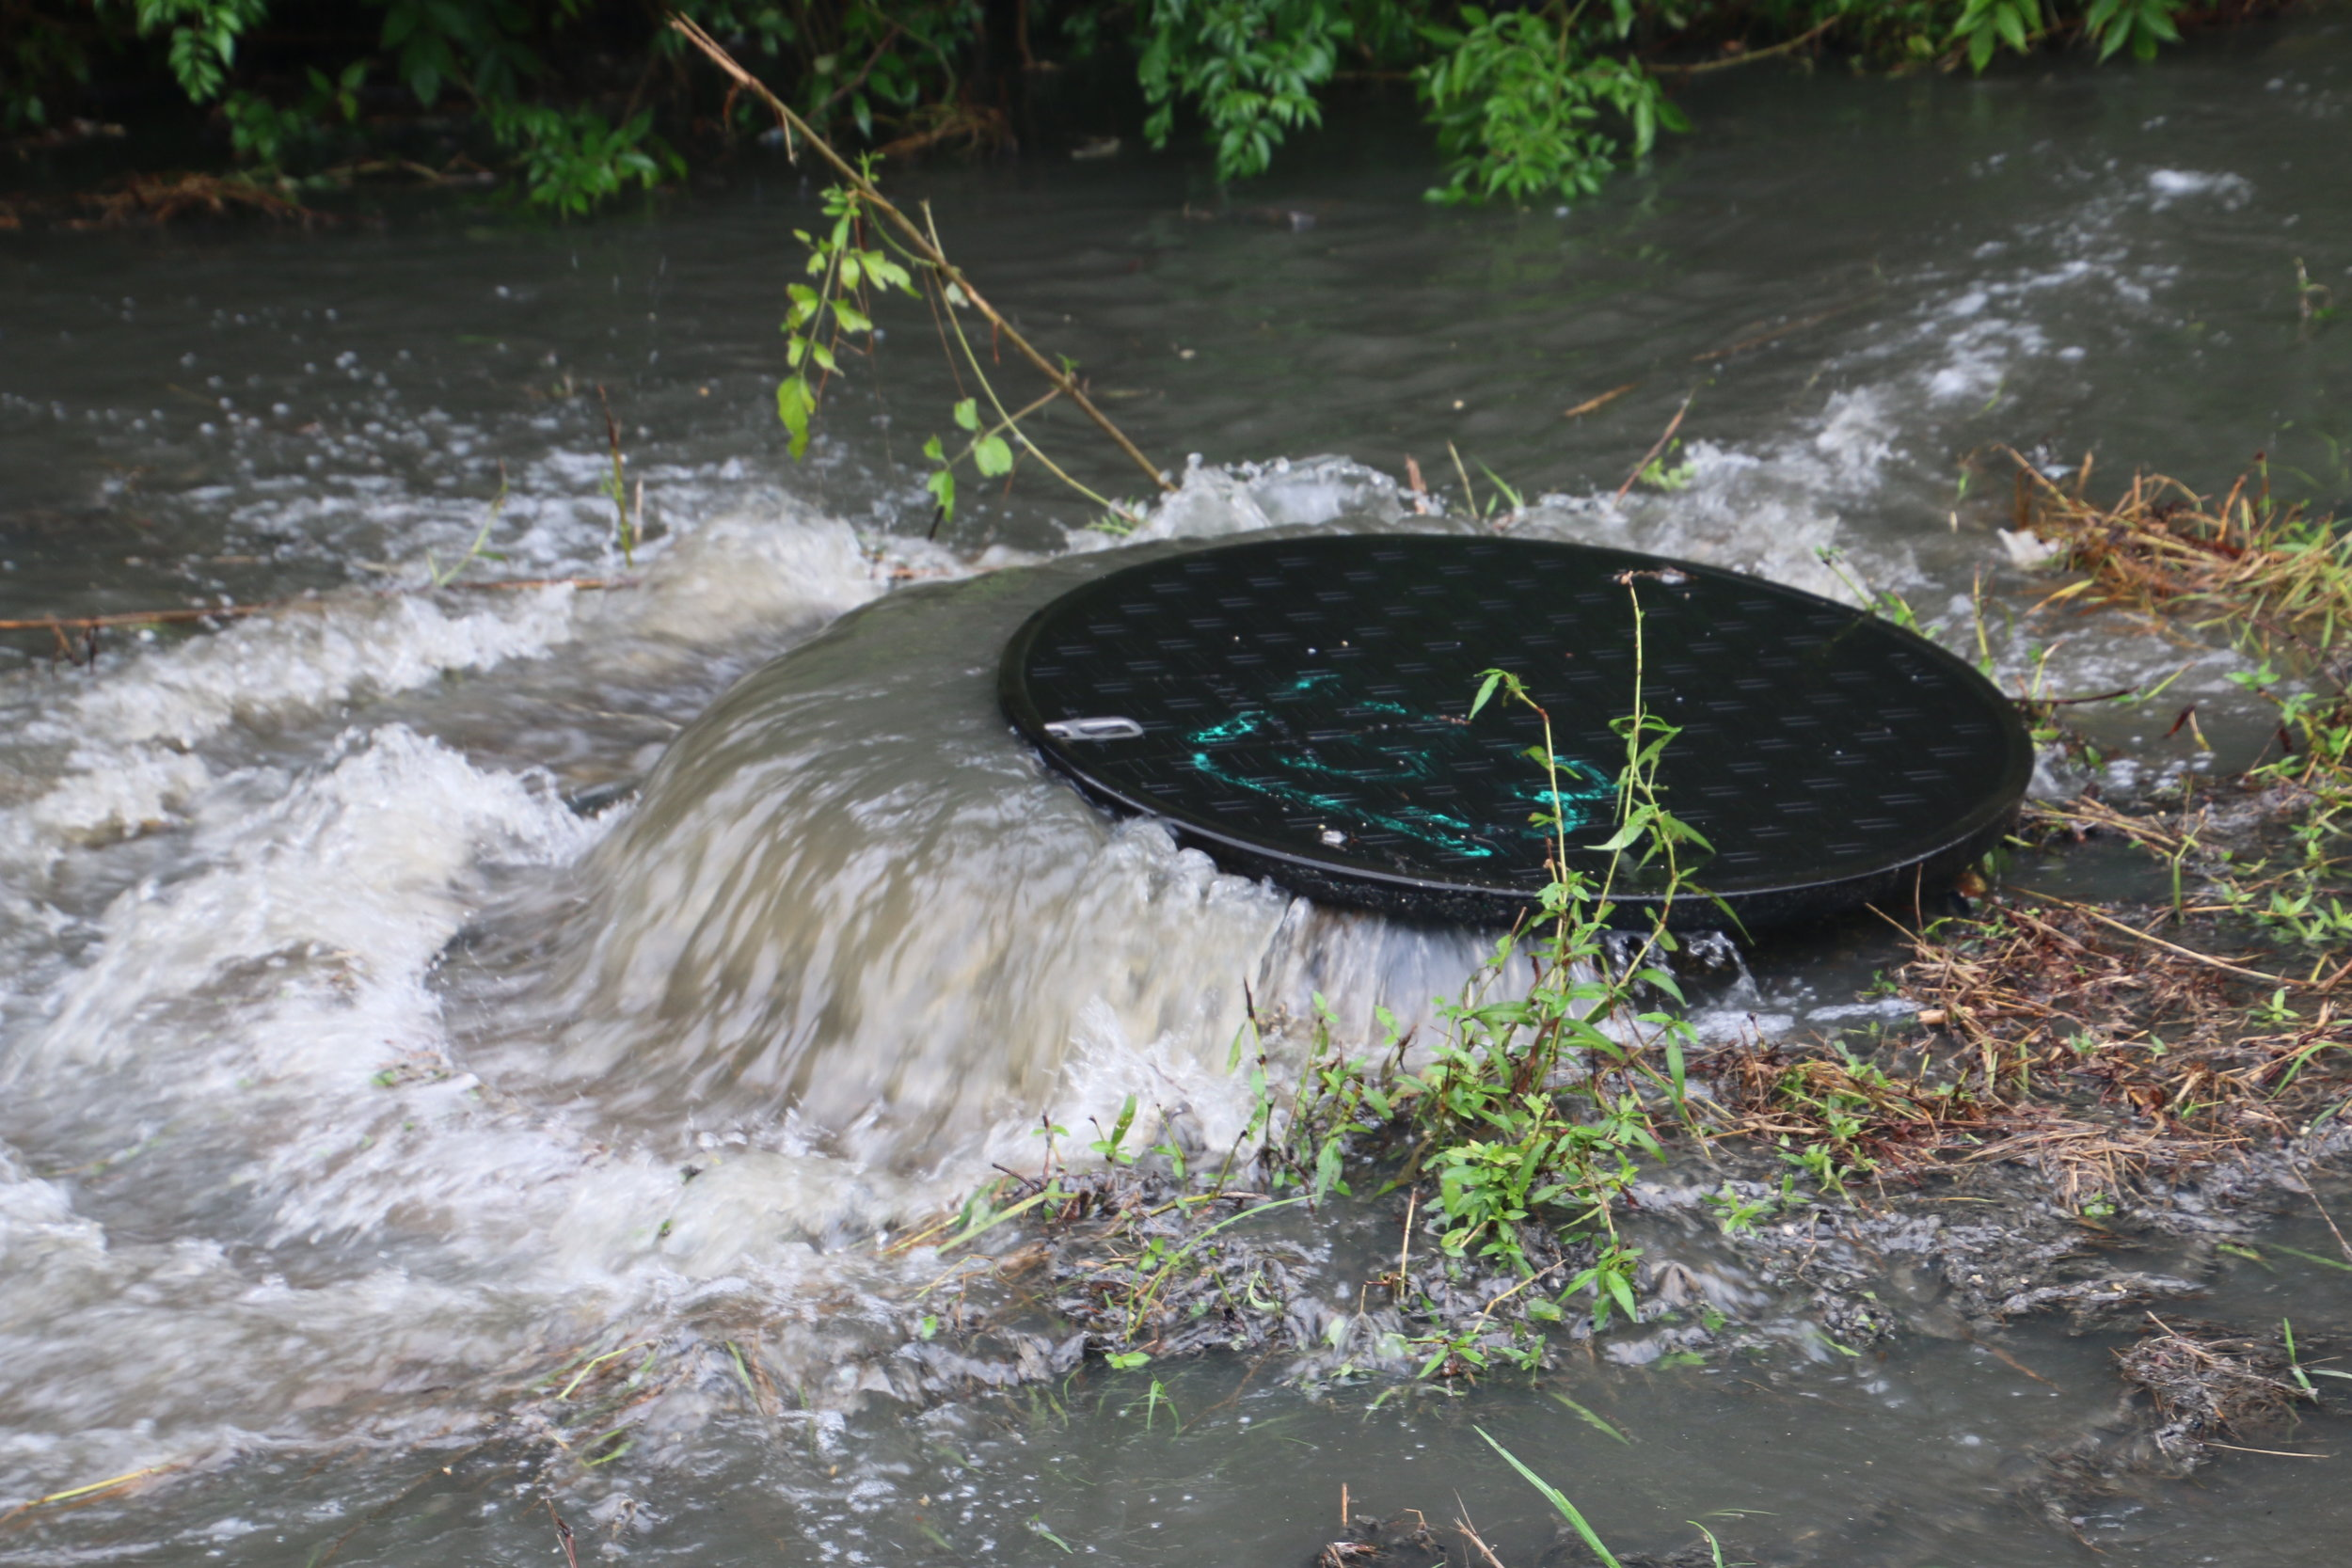 Above: Sewage spills from a manhole into Bolton Branch in Mobile.